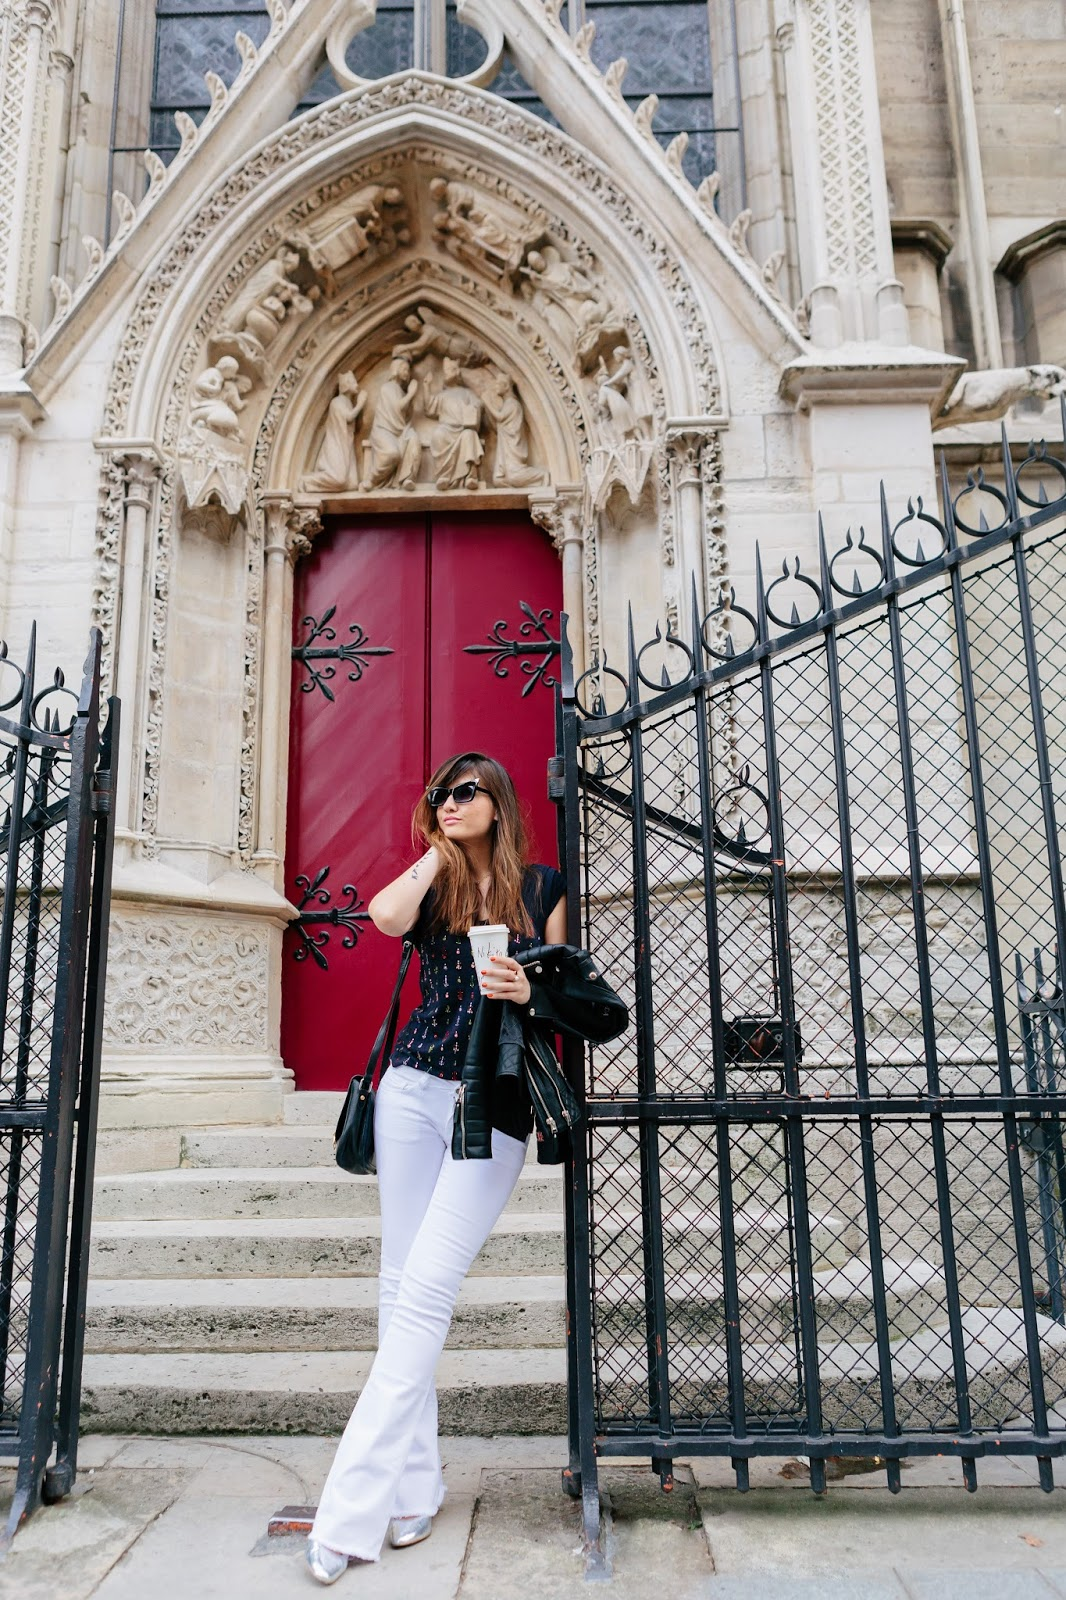 Blogger, Parisian style, Look of the day, Chic style, meet me in paree